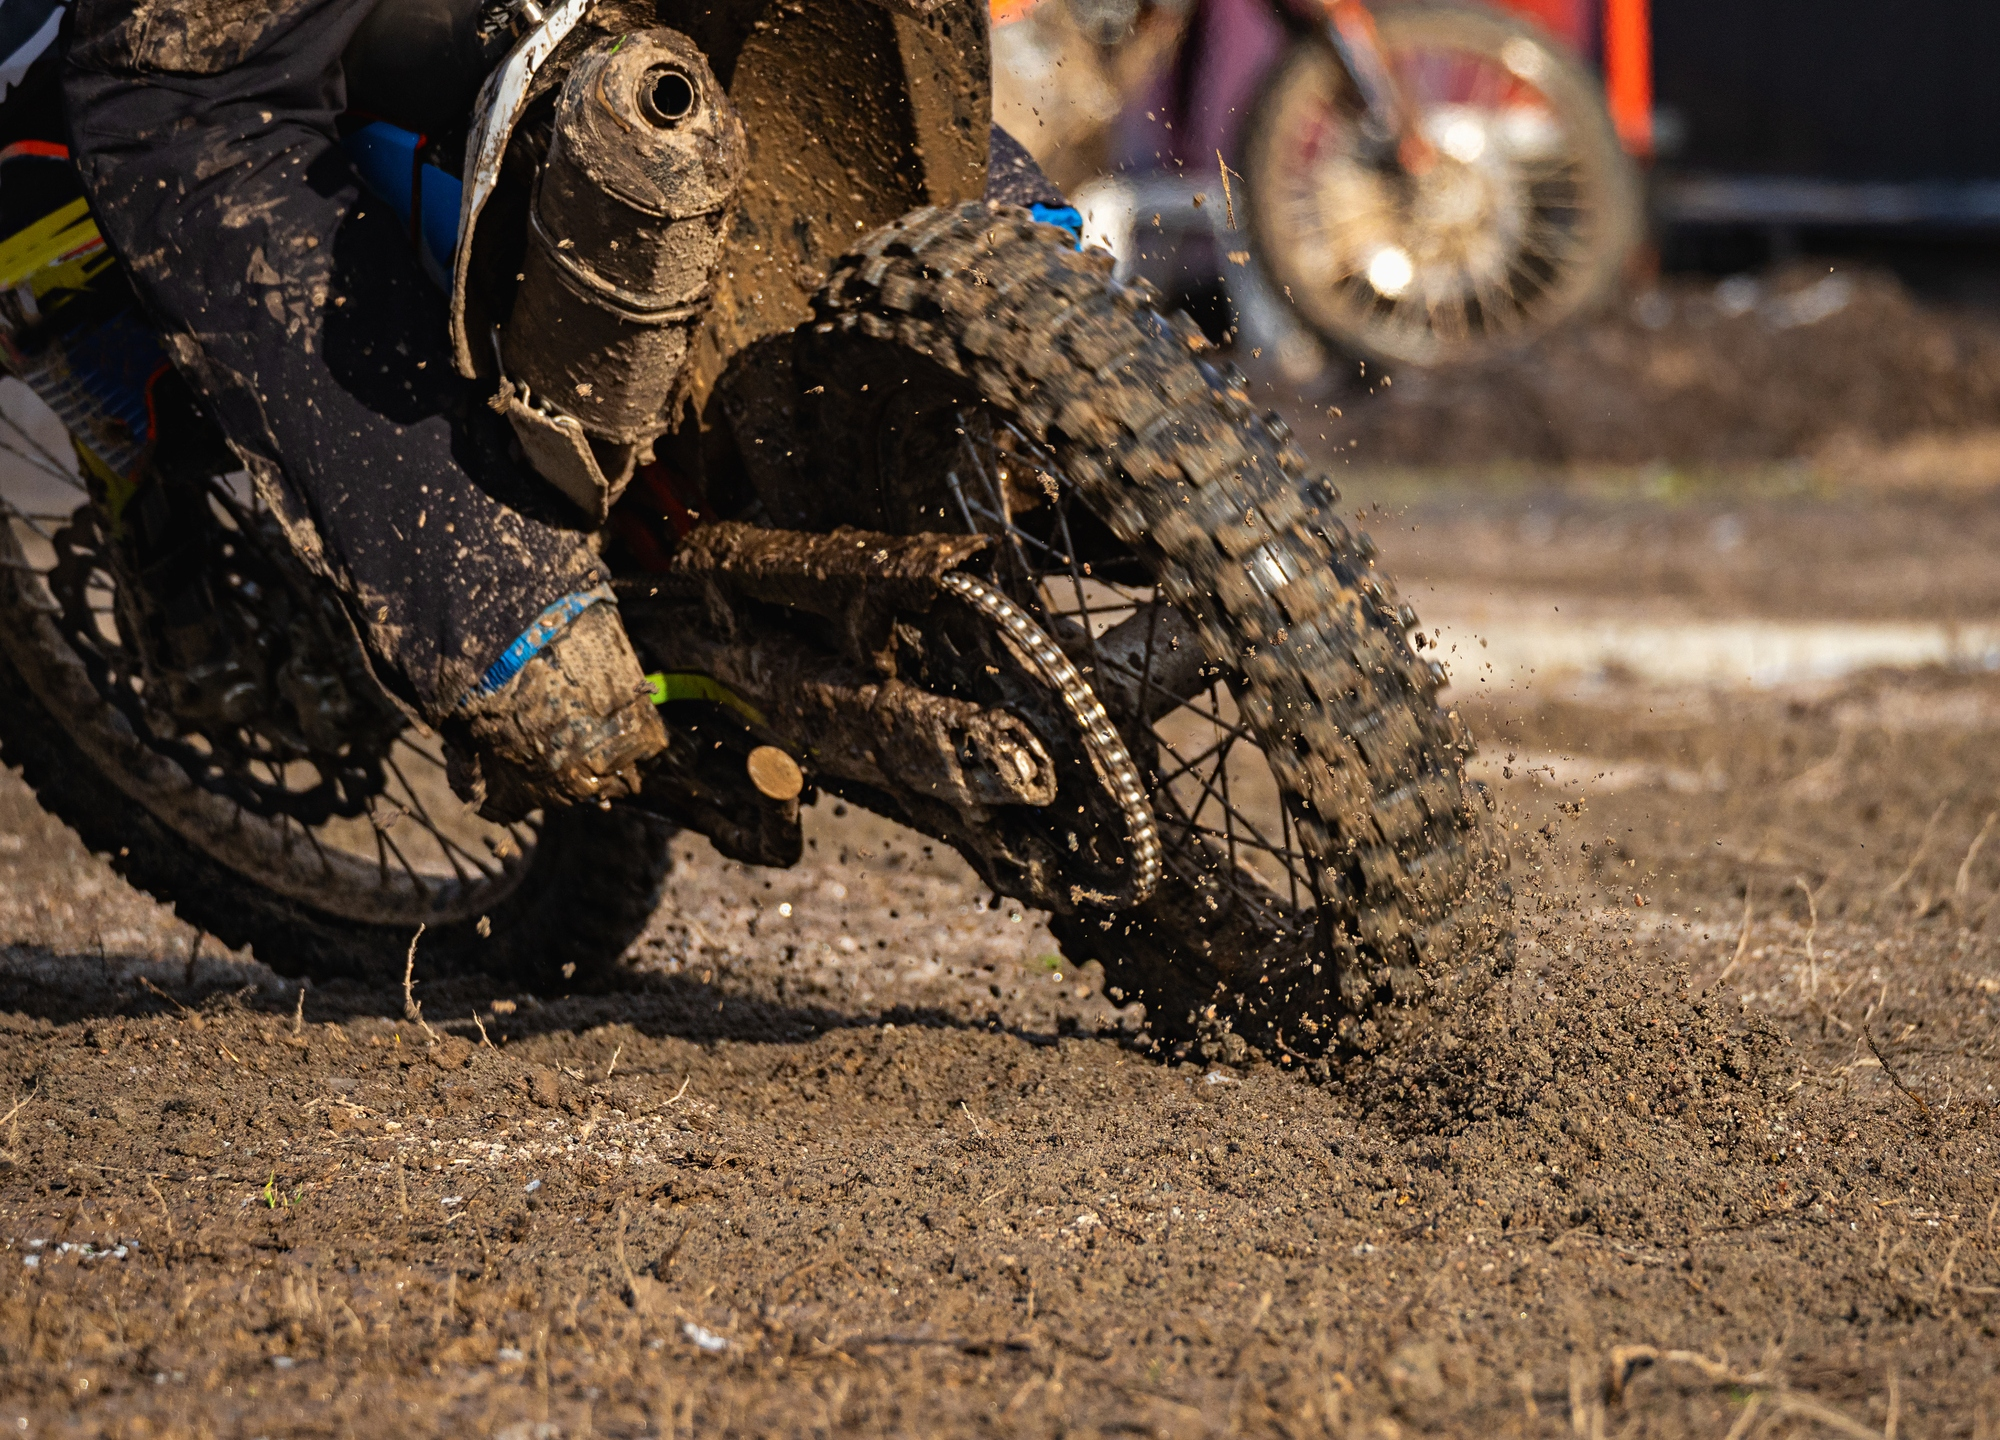 Dirt bike tire. Part of motocross bike in the mud (Getty Images)